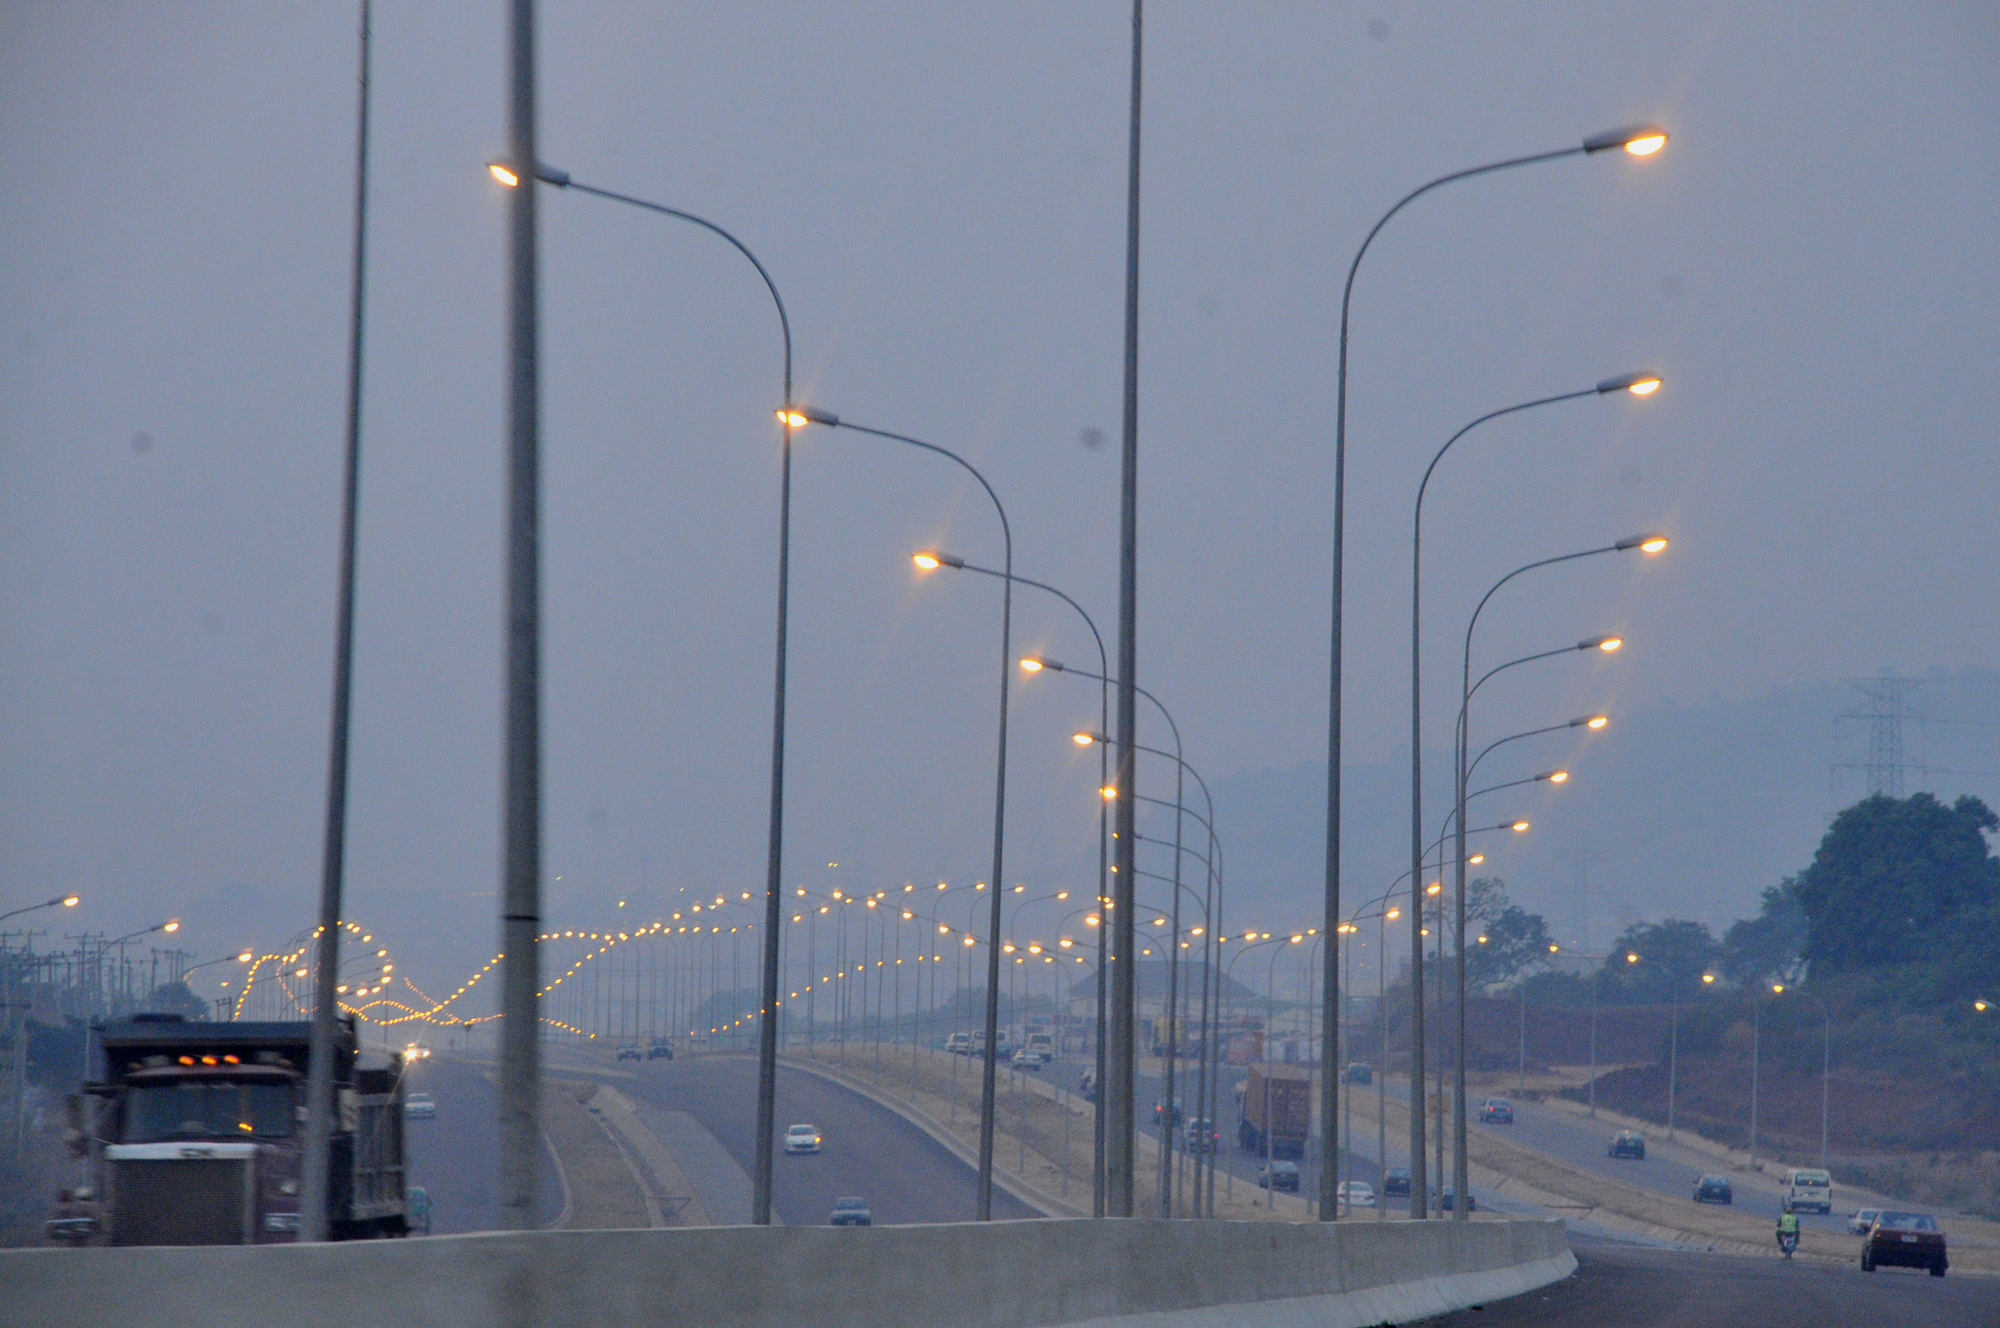 Borno Orders Street Lights From China Channels Television